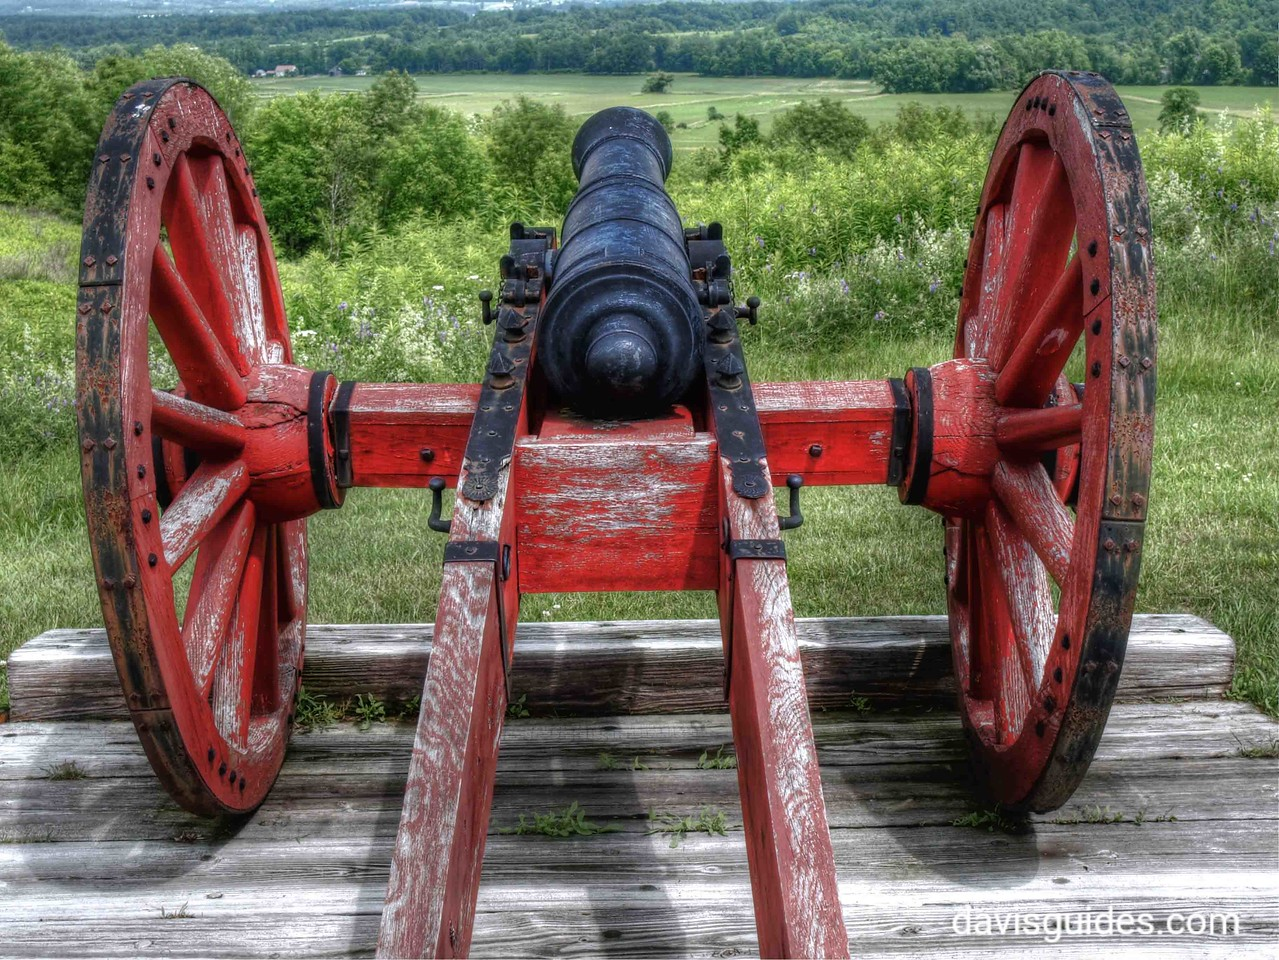 Revolutionary war cannon, Saratoga National Historical Park, NY